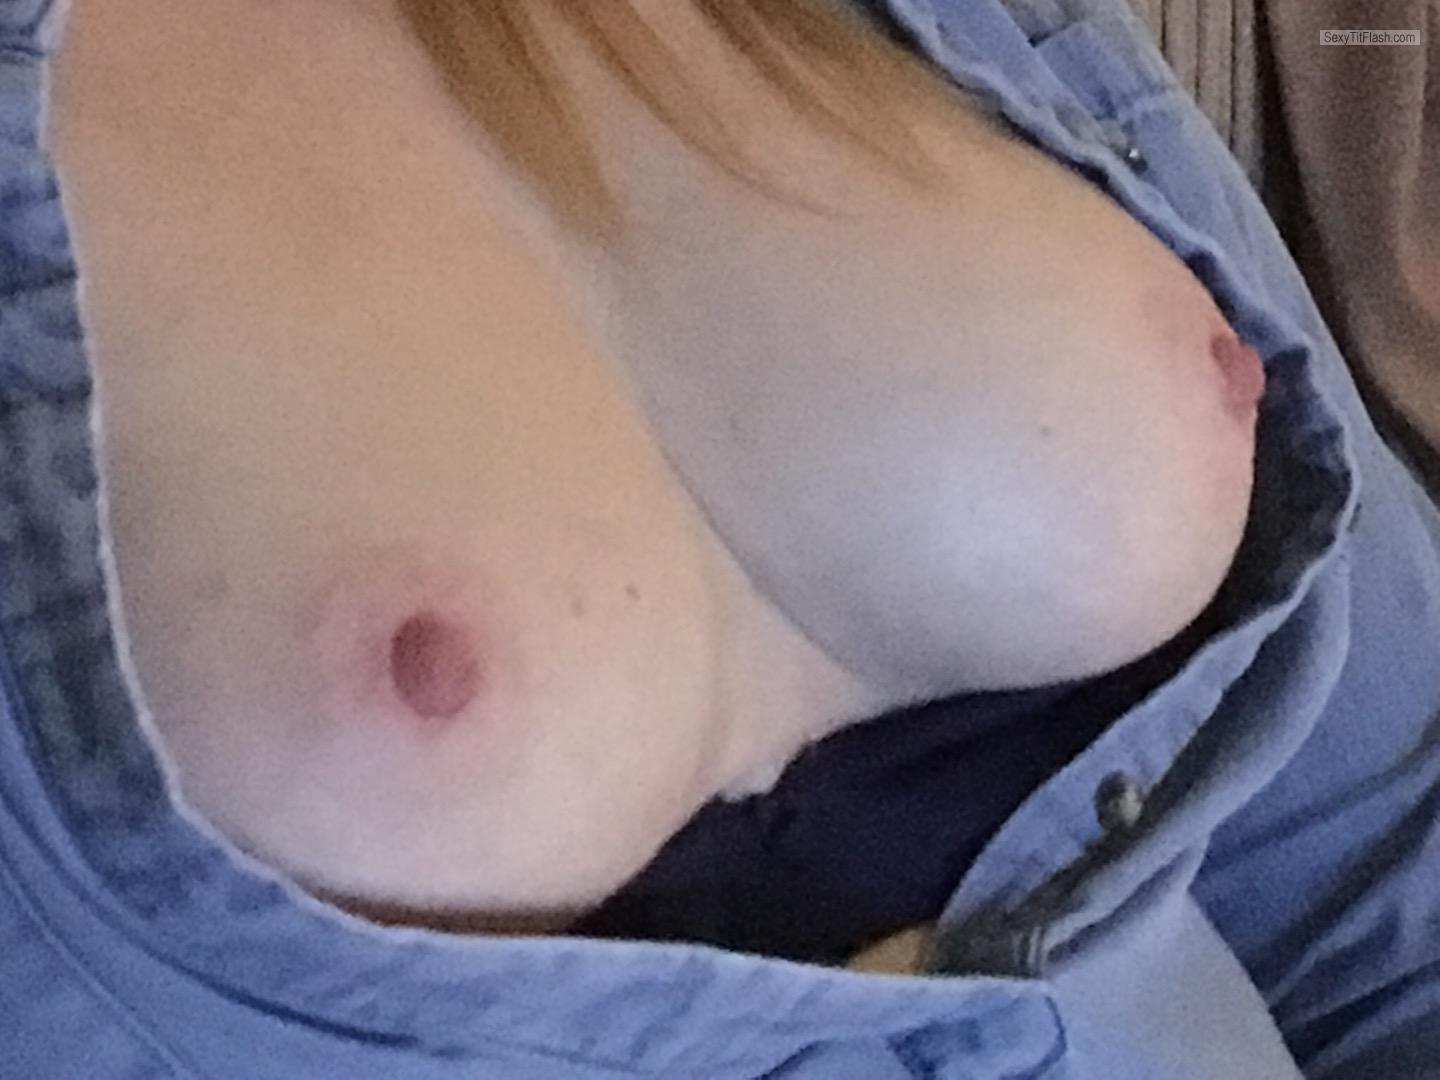 Tit Flash: Wife's Big Tits - Topless Candy from United Kingdom